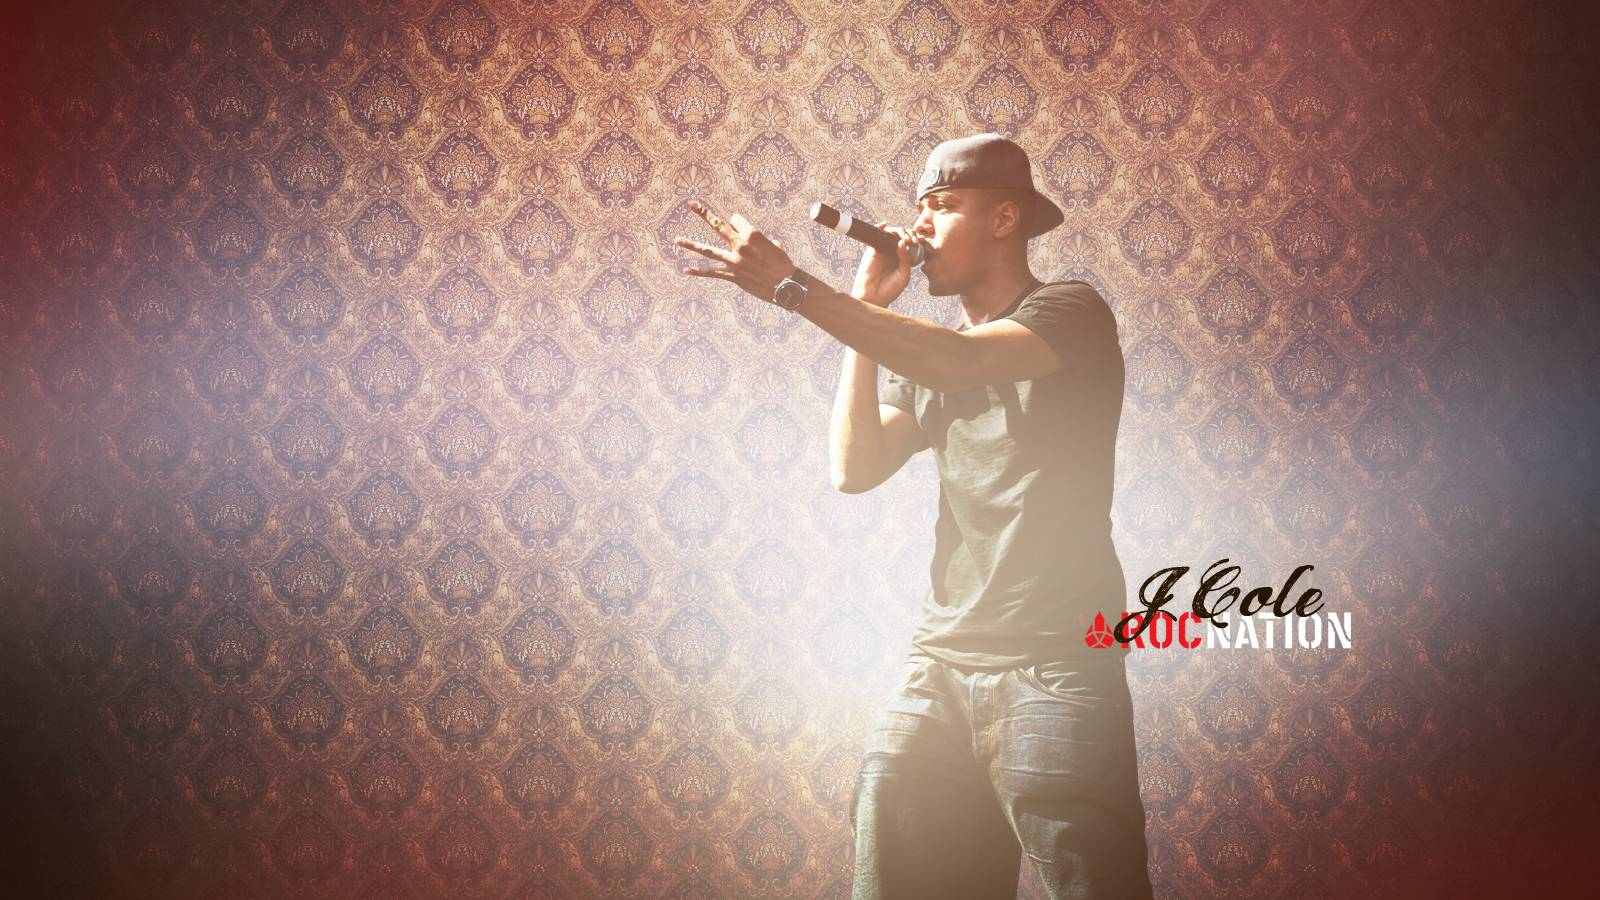 J cole Love Yourz Wallpaper : J cole Wallpaper